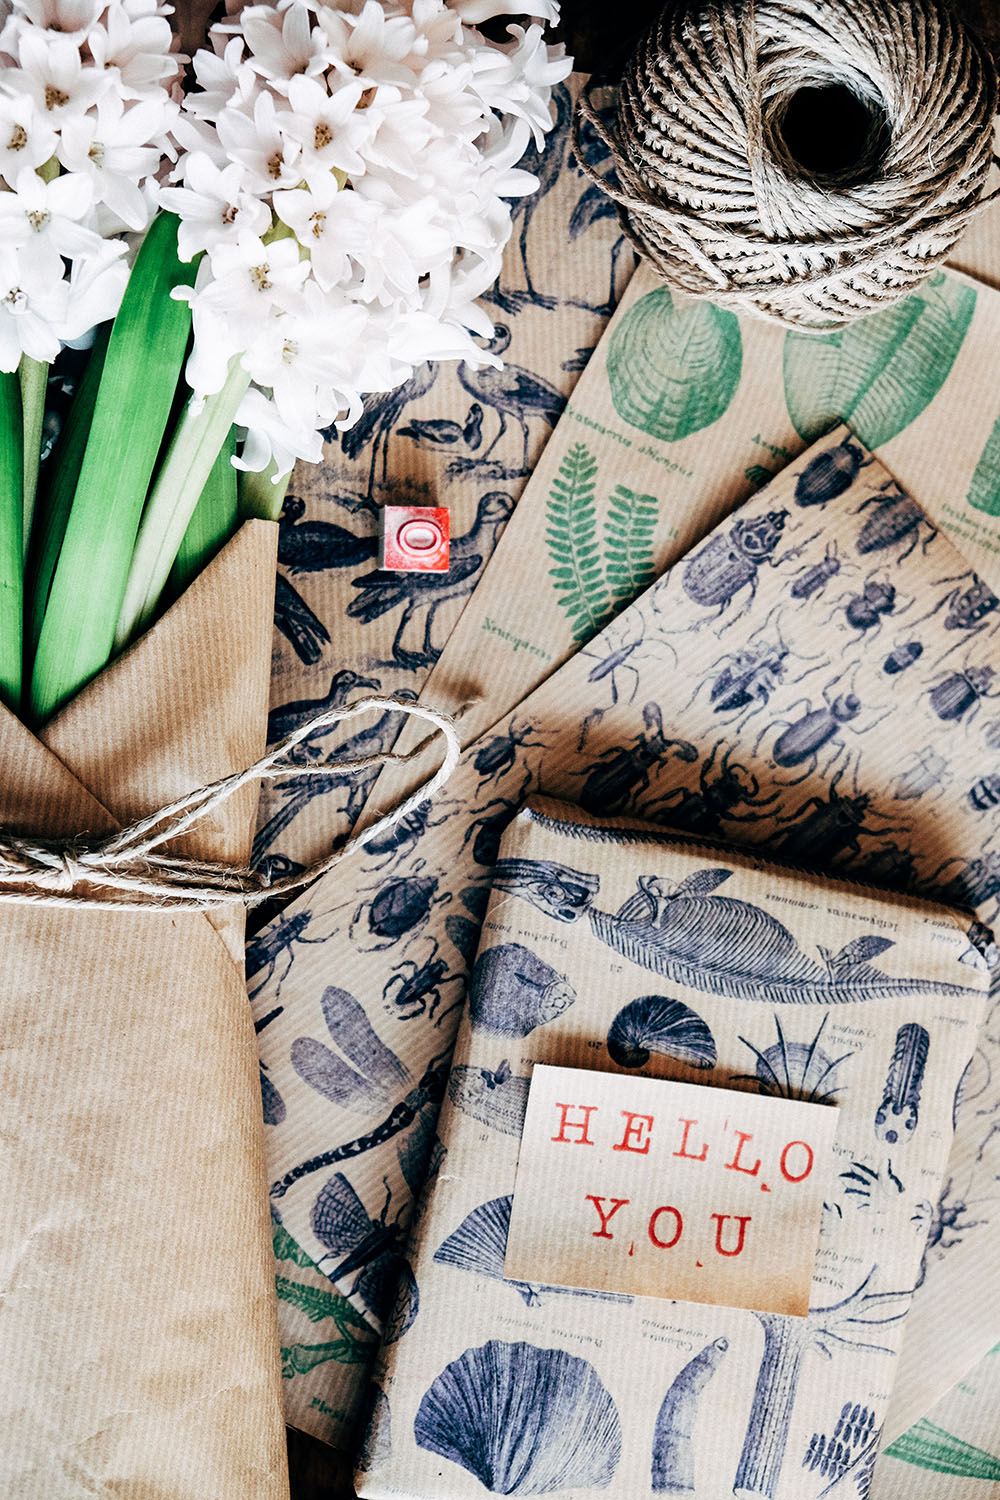 Free vintage printables to make unusual wrapping paper via Mammasaurus